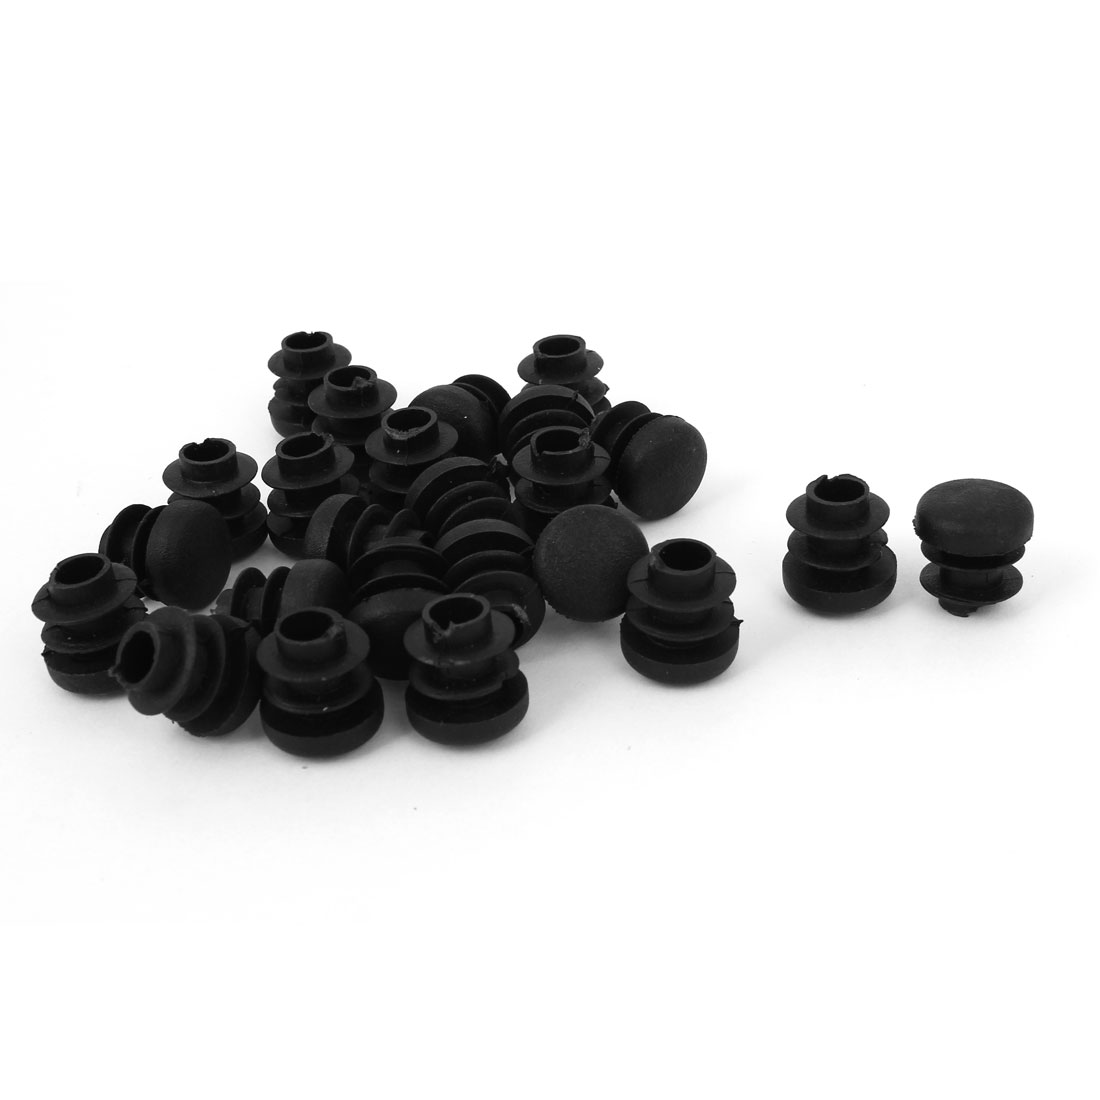 Black Plastic 14mm Diameter Blanking End Caps Round Tubing Insert 24 Pcs